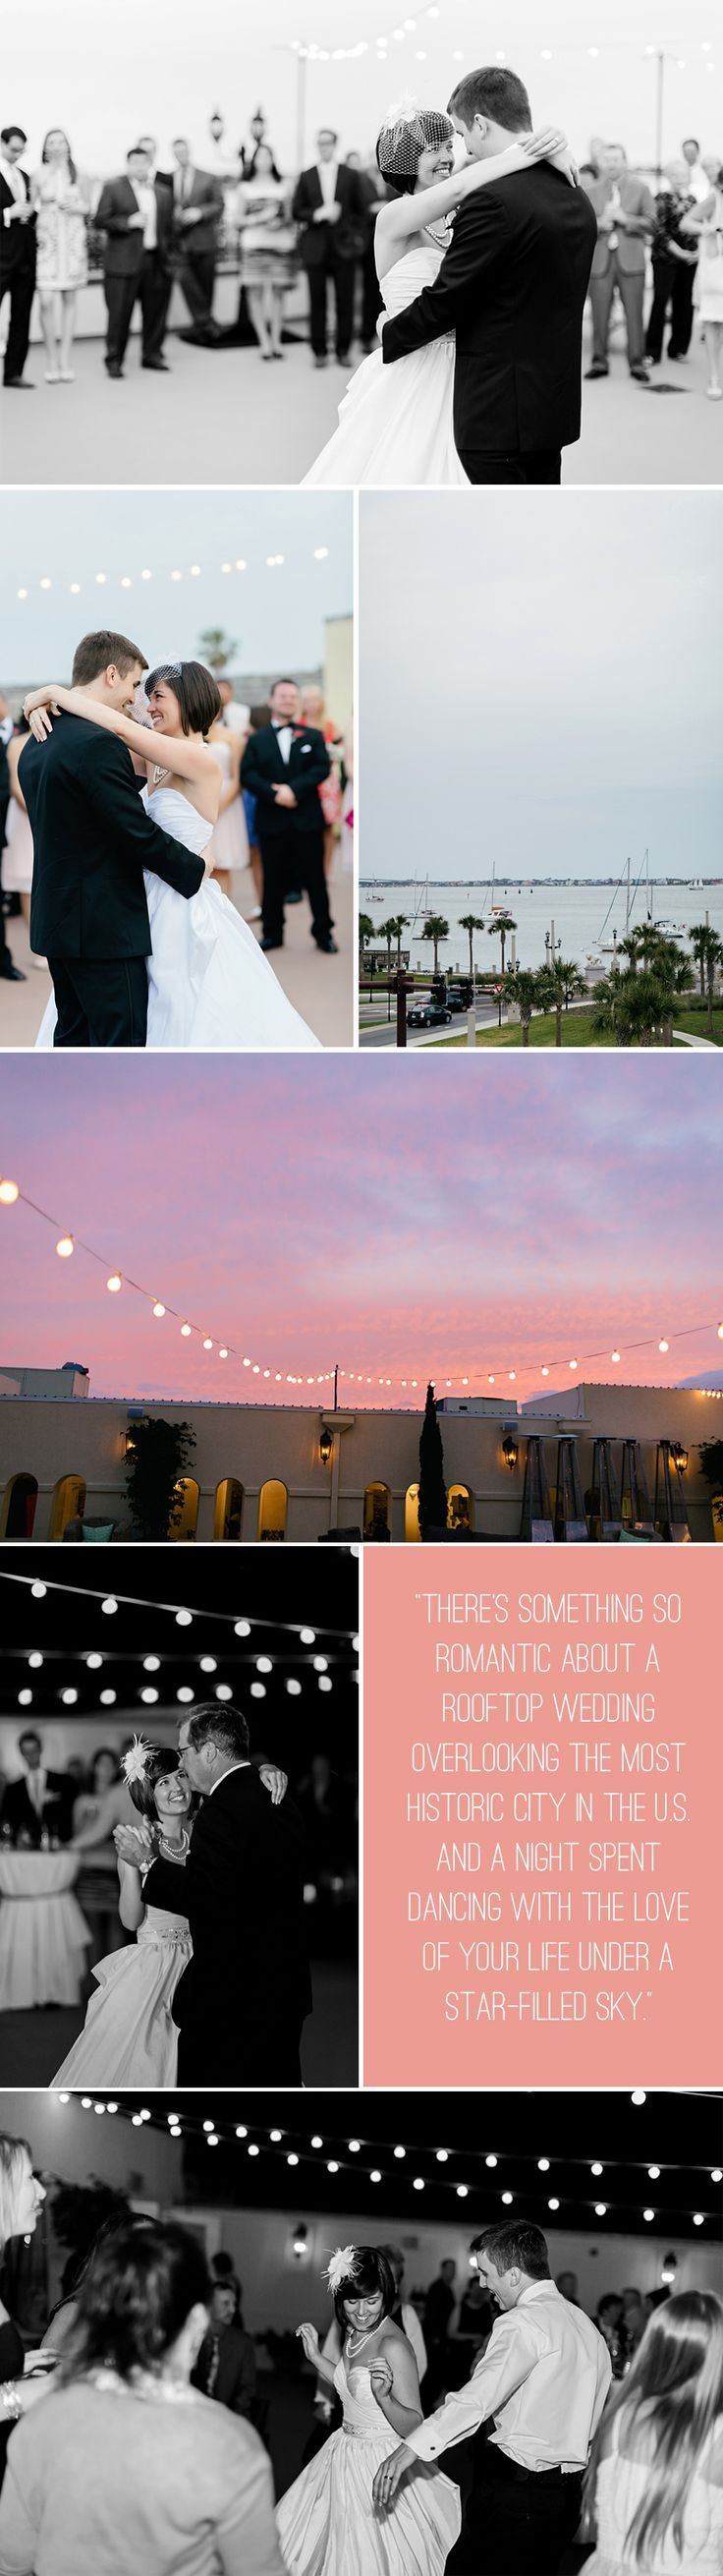 "There's something so romantic about a rooftop wedding overlooking the most historic city in the U.S. and a night spent dancing with the love of your life under a star-filled sky.  ""As As soon as Chris and I stepped foot onto the rooftop at The White Room in St. Augustine, FL we knew it was just what we had been looking for. With beautiful wood floors, natural light, gorgeous textured brick..."